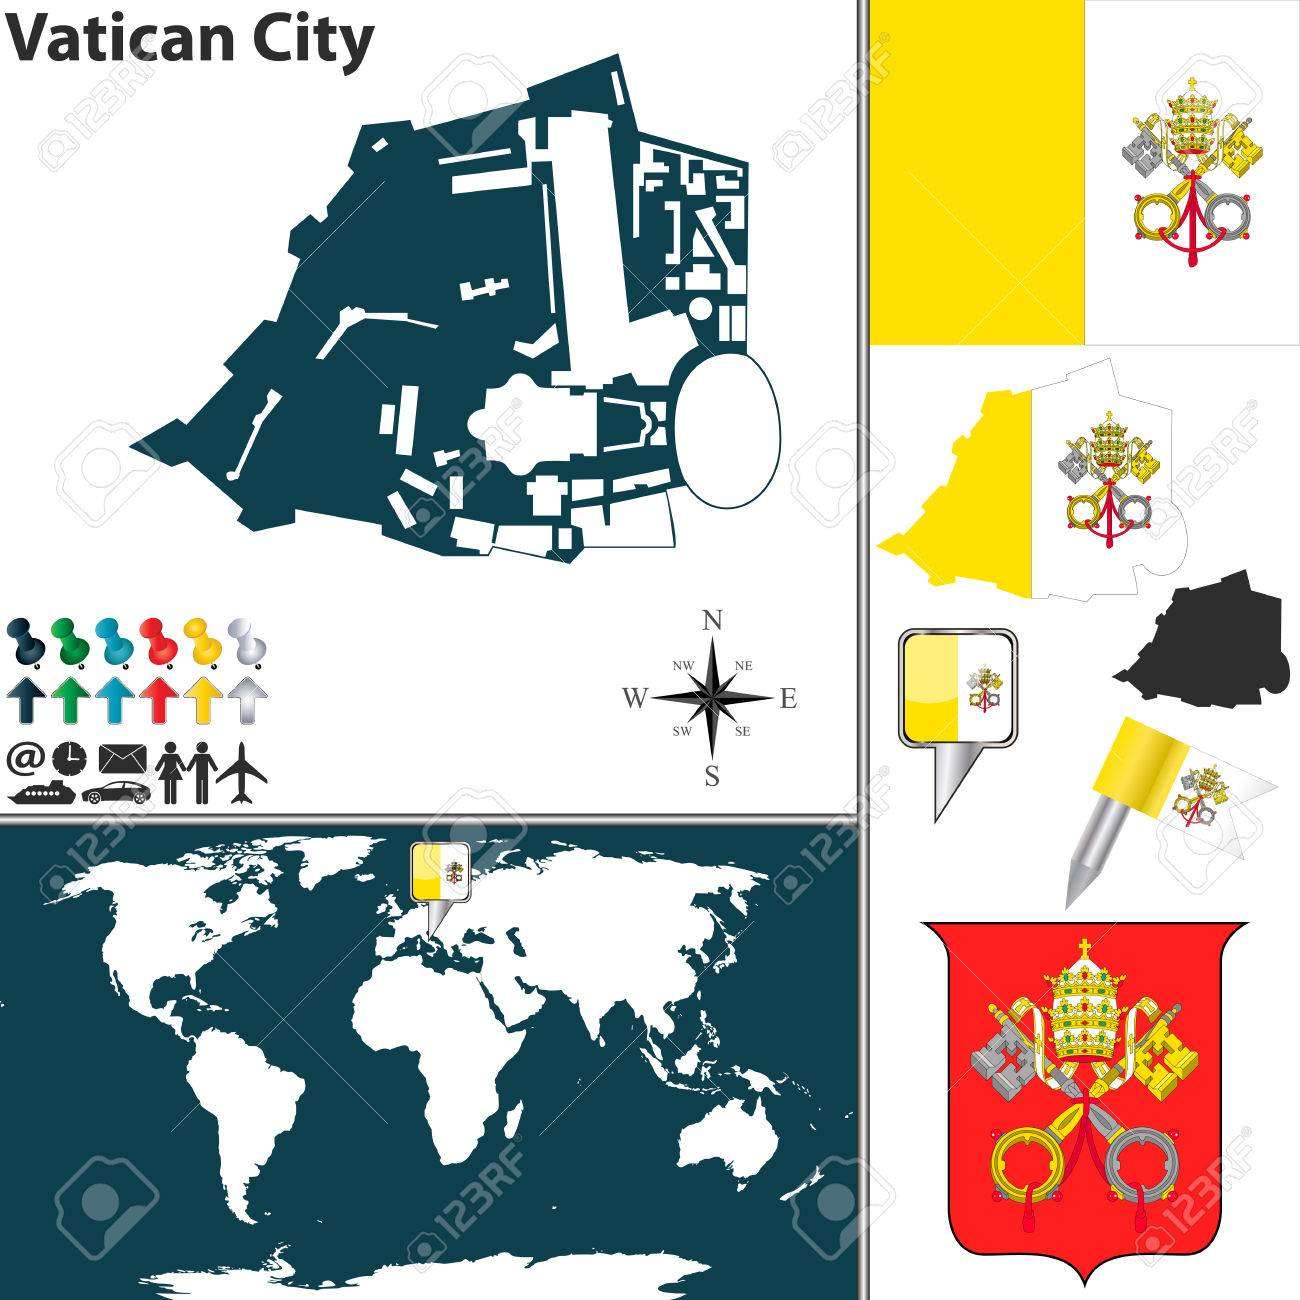 Map Of Vatican City With Coat Of Arms And Location On World Map ...